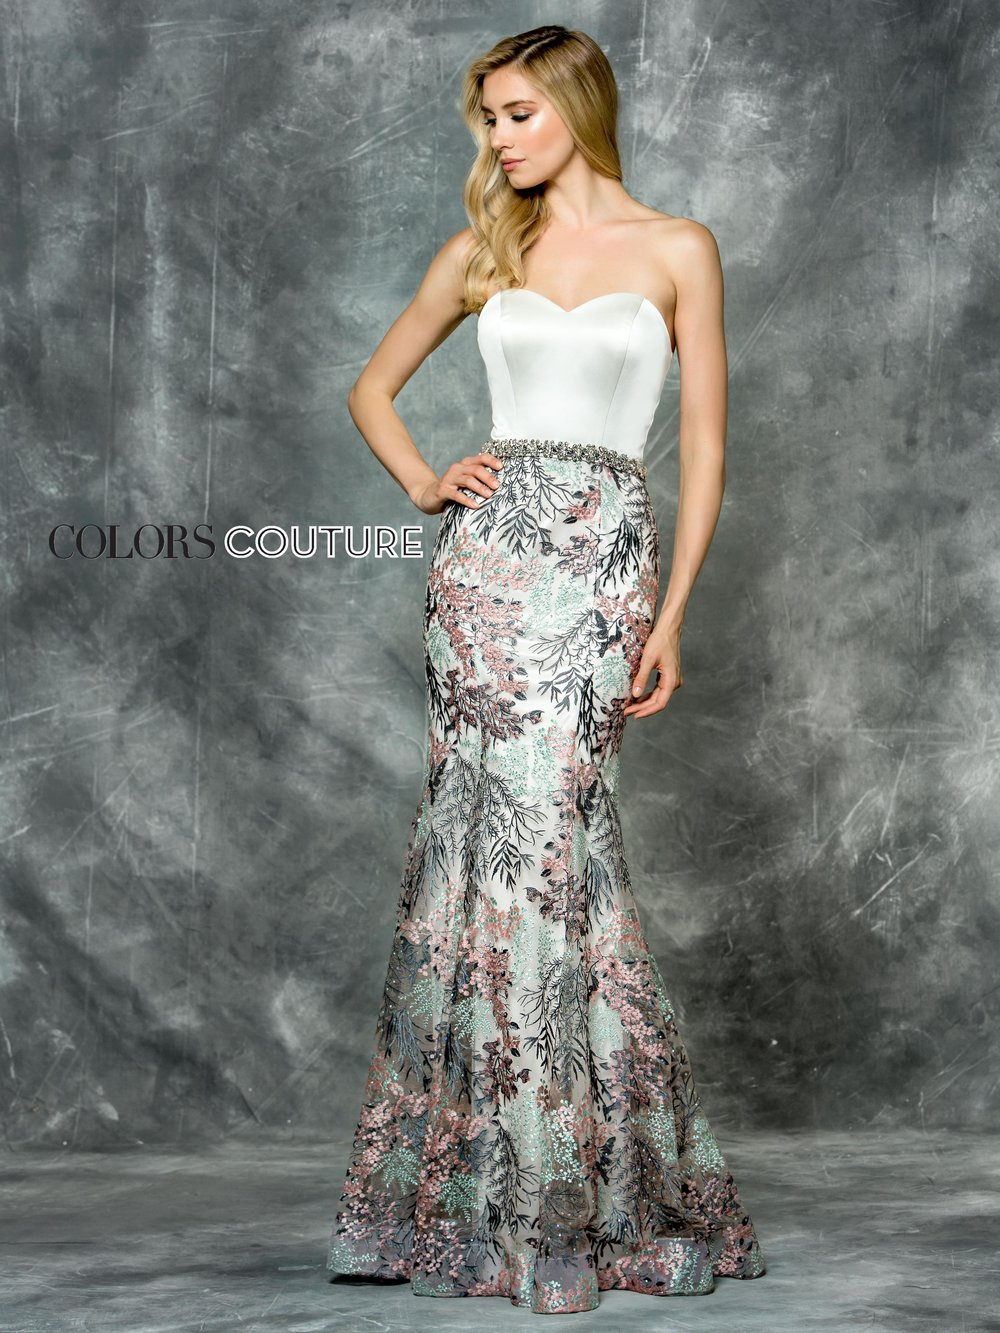 J033 -  Long White/Multi lace dress with fitted skirt and a strapless bodice.      Colors Available - White/Multi